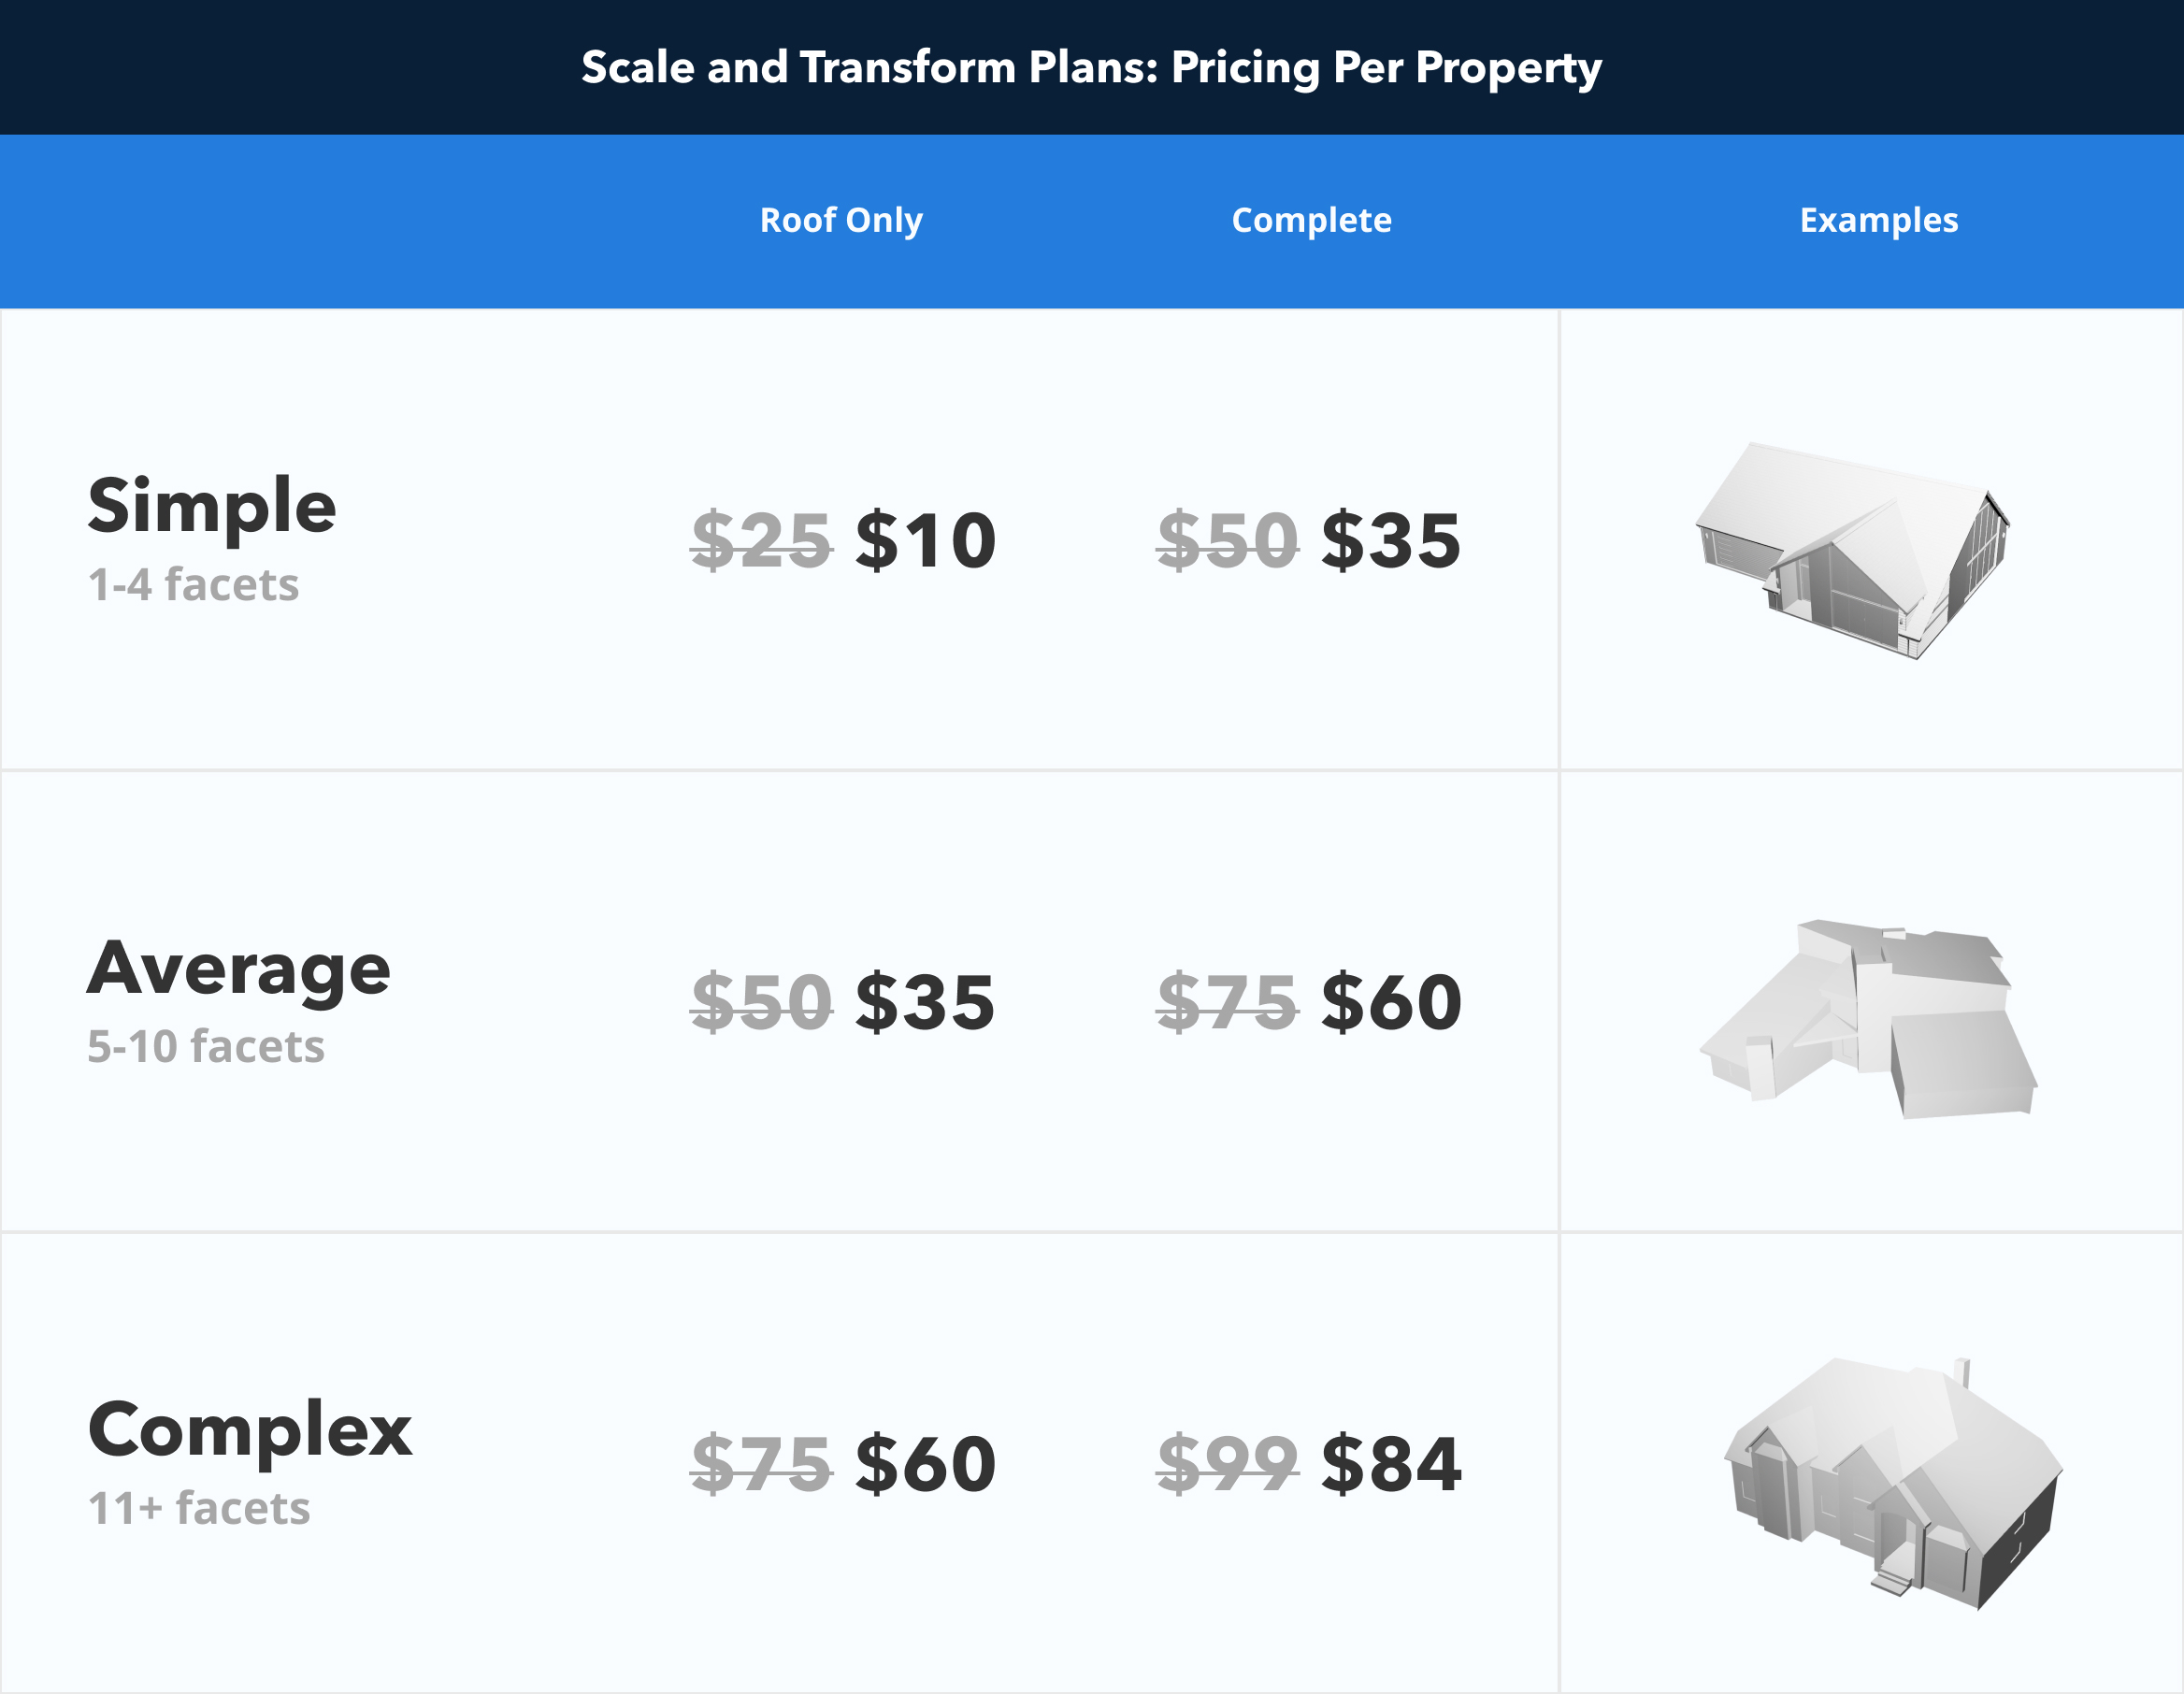 Pricing Table - Scale and Transform Plans